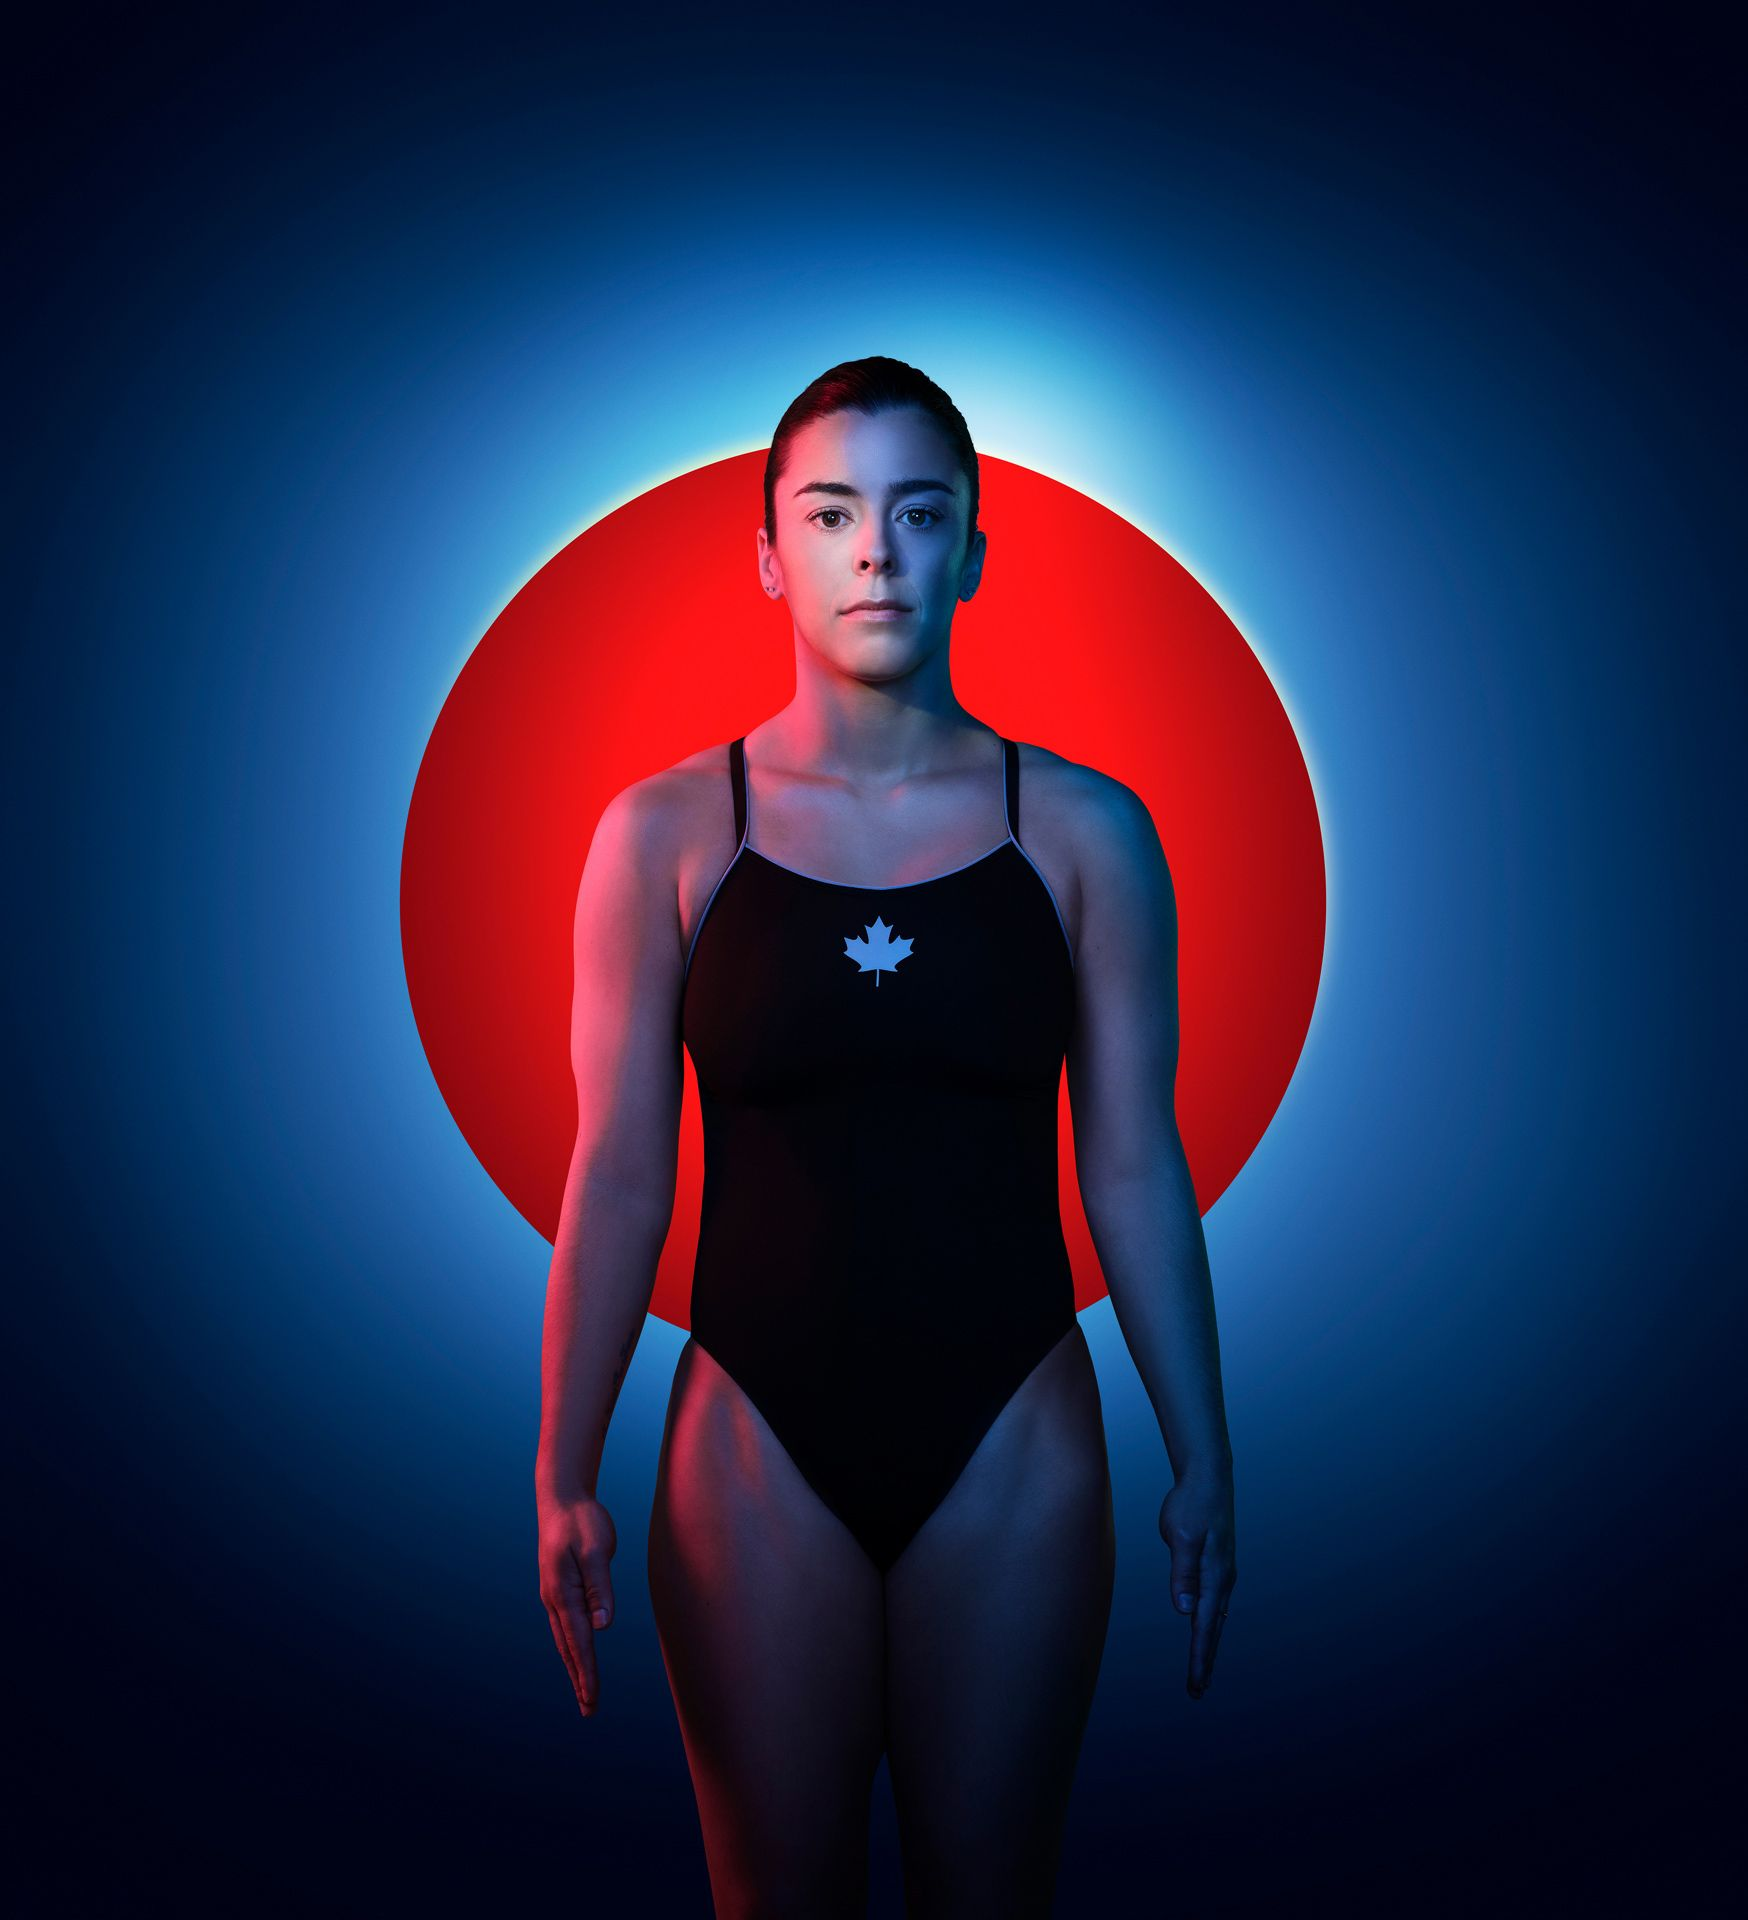 Meaghan olympic athlete posing in bathing suit with blue lights and a red dot for Tokyo Olympics.